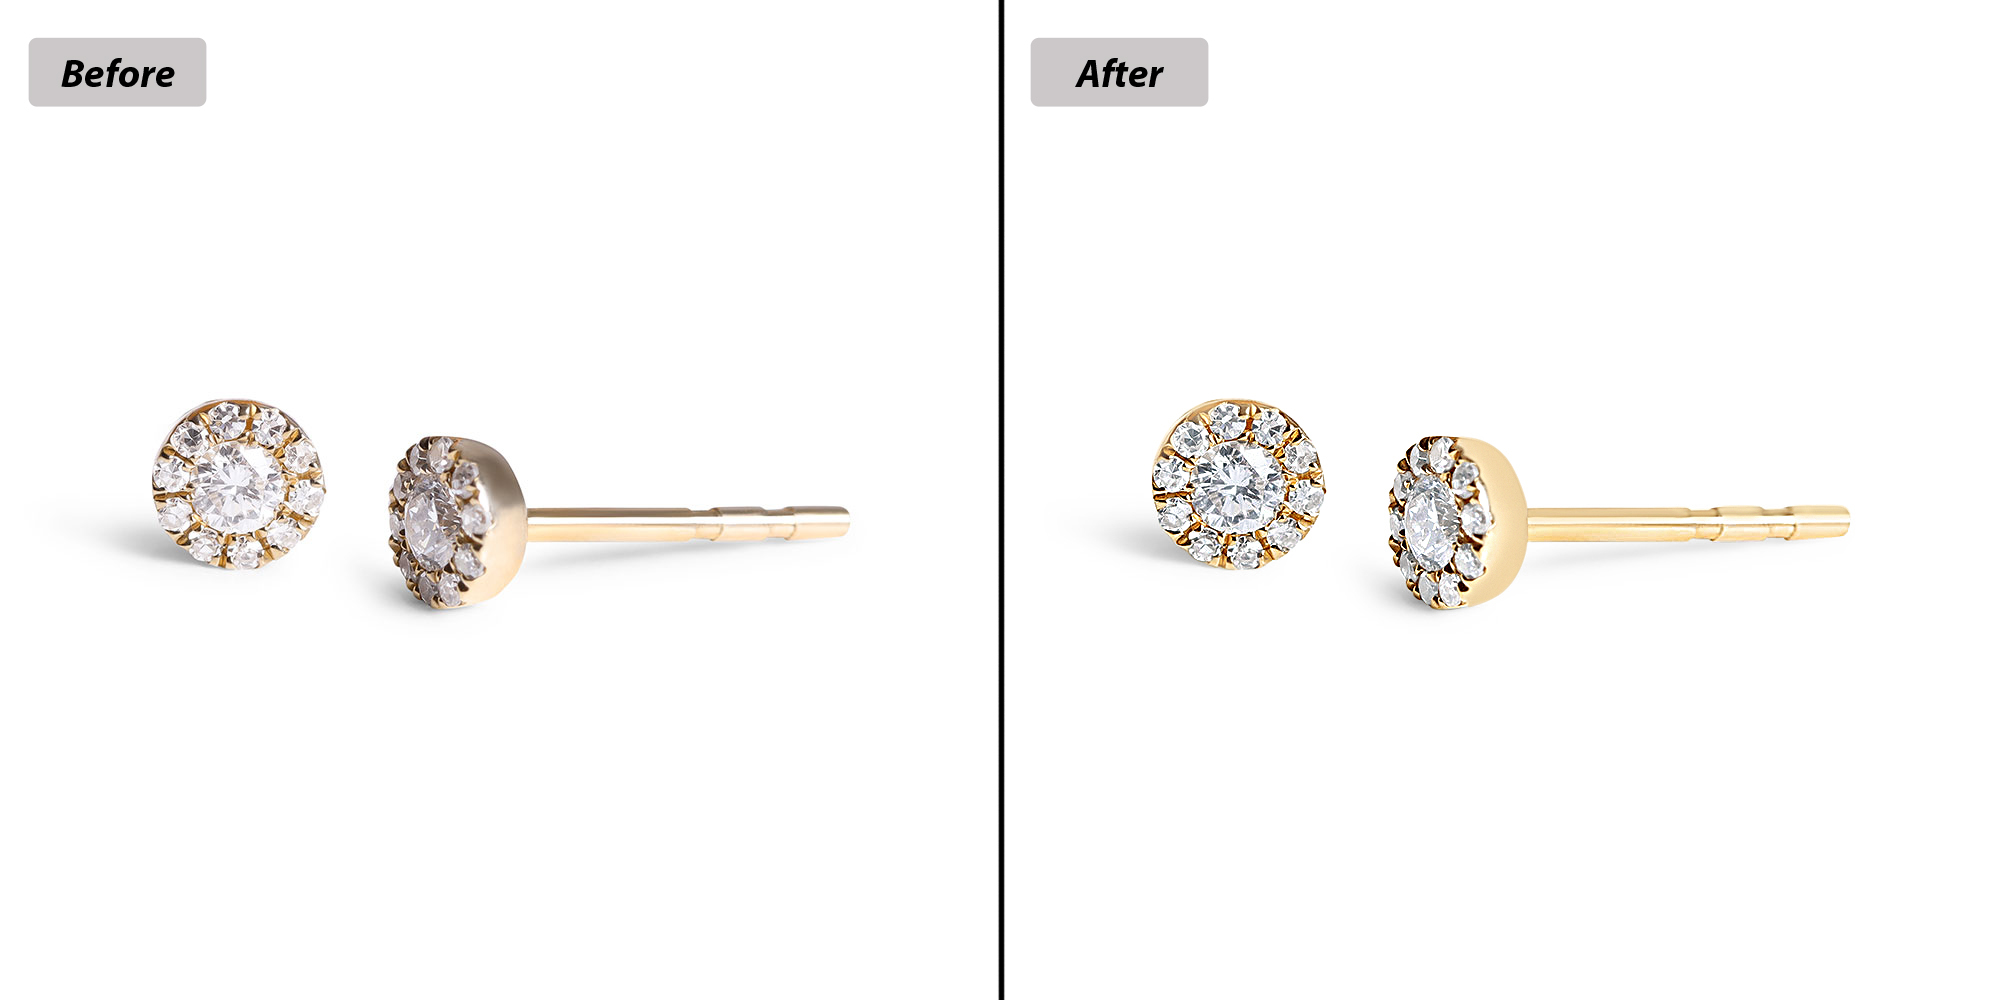 Clipping Charm_jewellery retouch 031